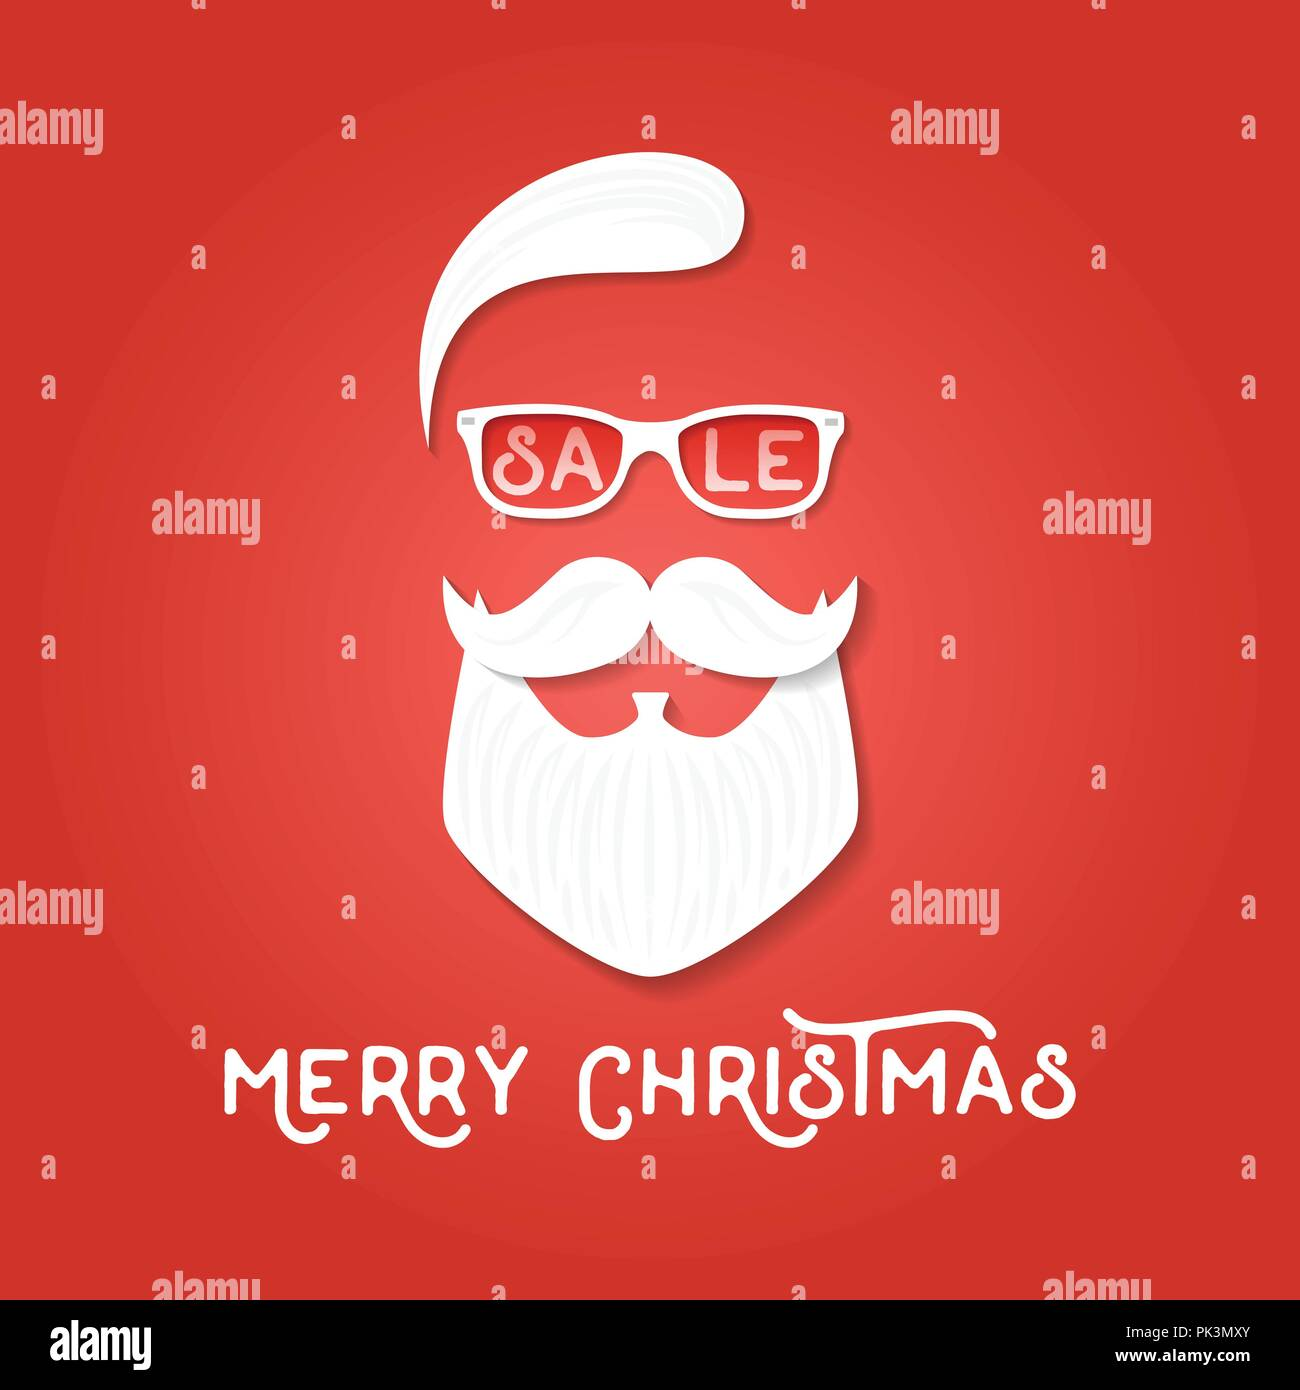 Christmas Sale Season Template Santa Claus On The Red Backgrounds